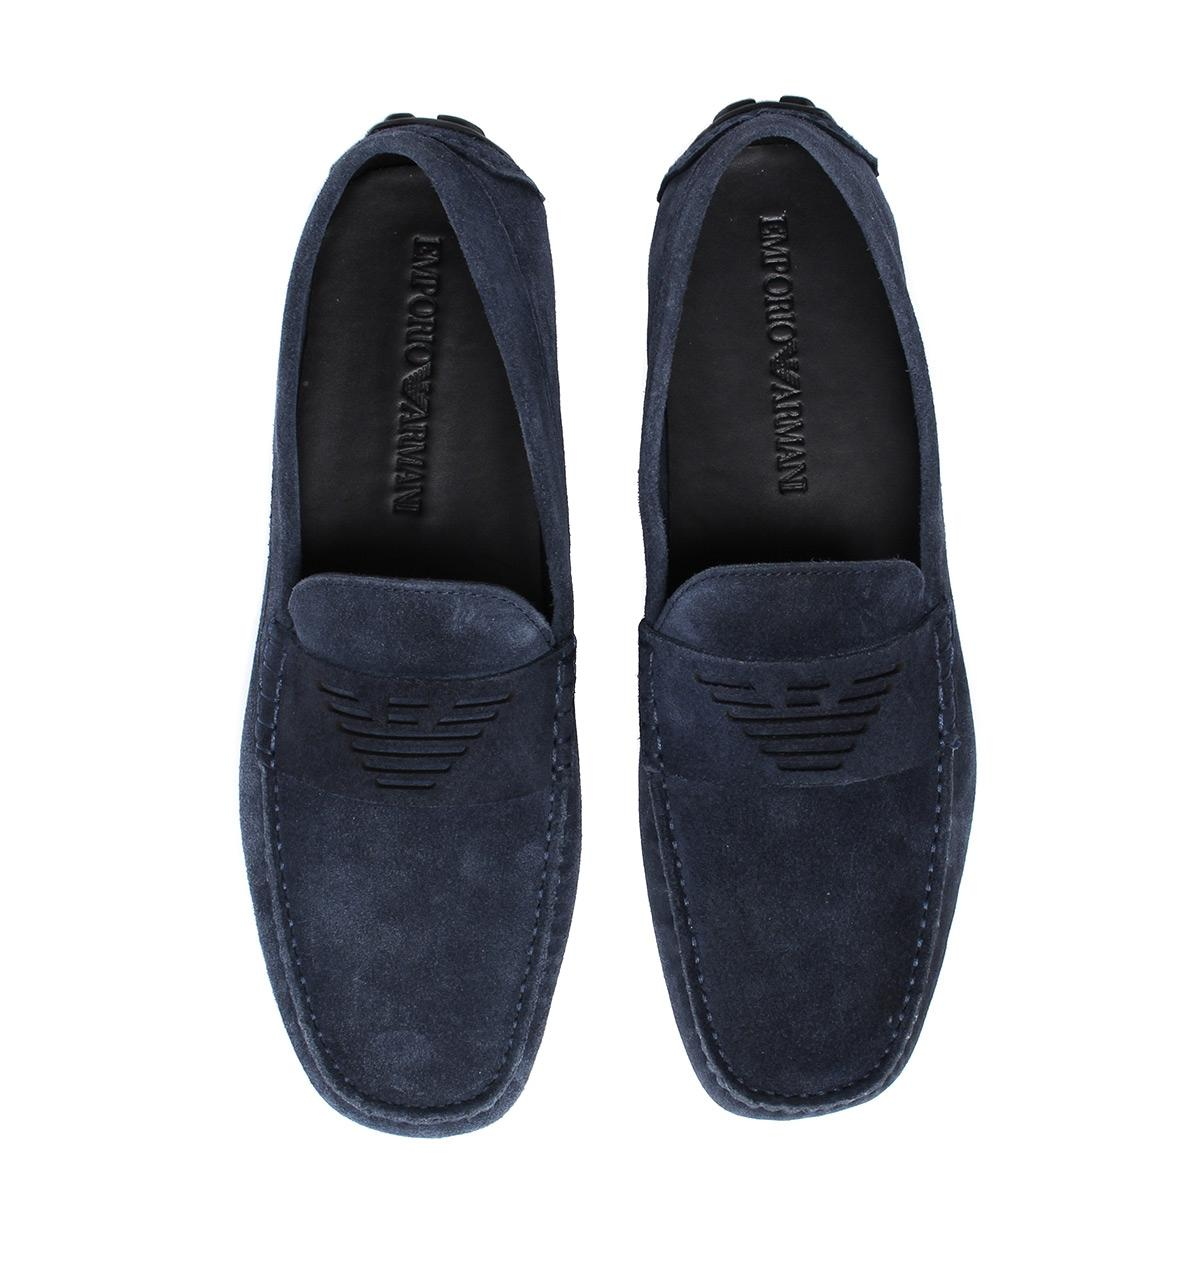 dd02fe0bbe60 Lyst - Emporio Armani Midnight Blue Suede Driving Shoes in Blue for Men